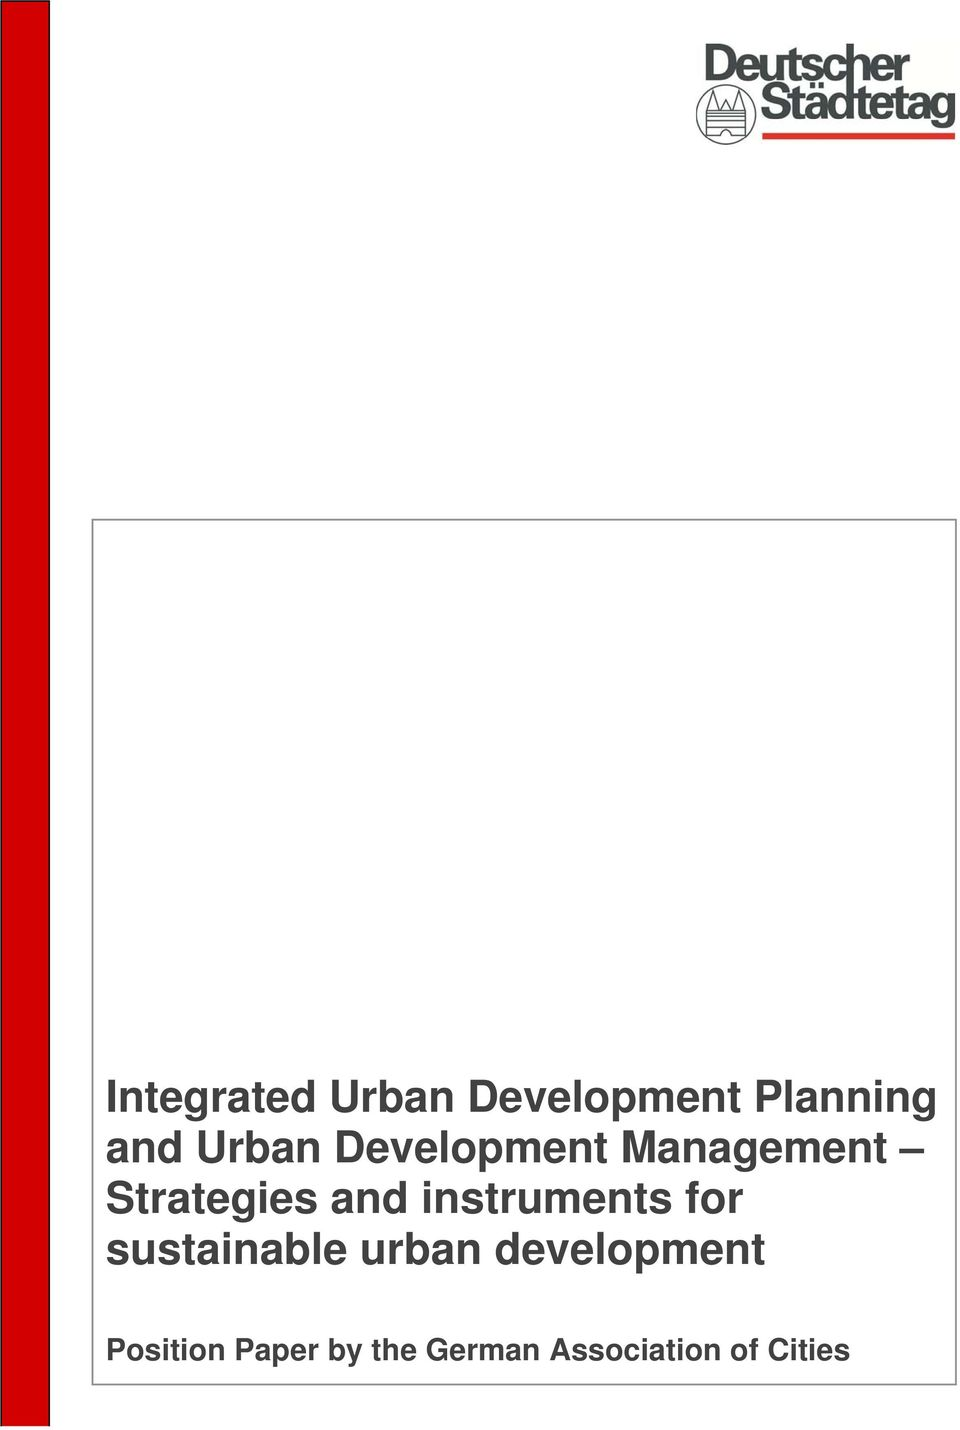 instruments for sustainable urban development